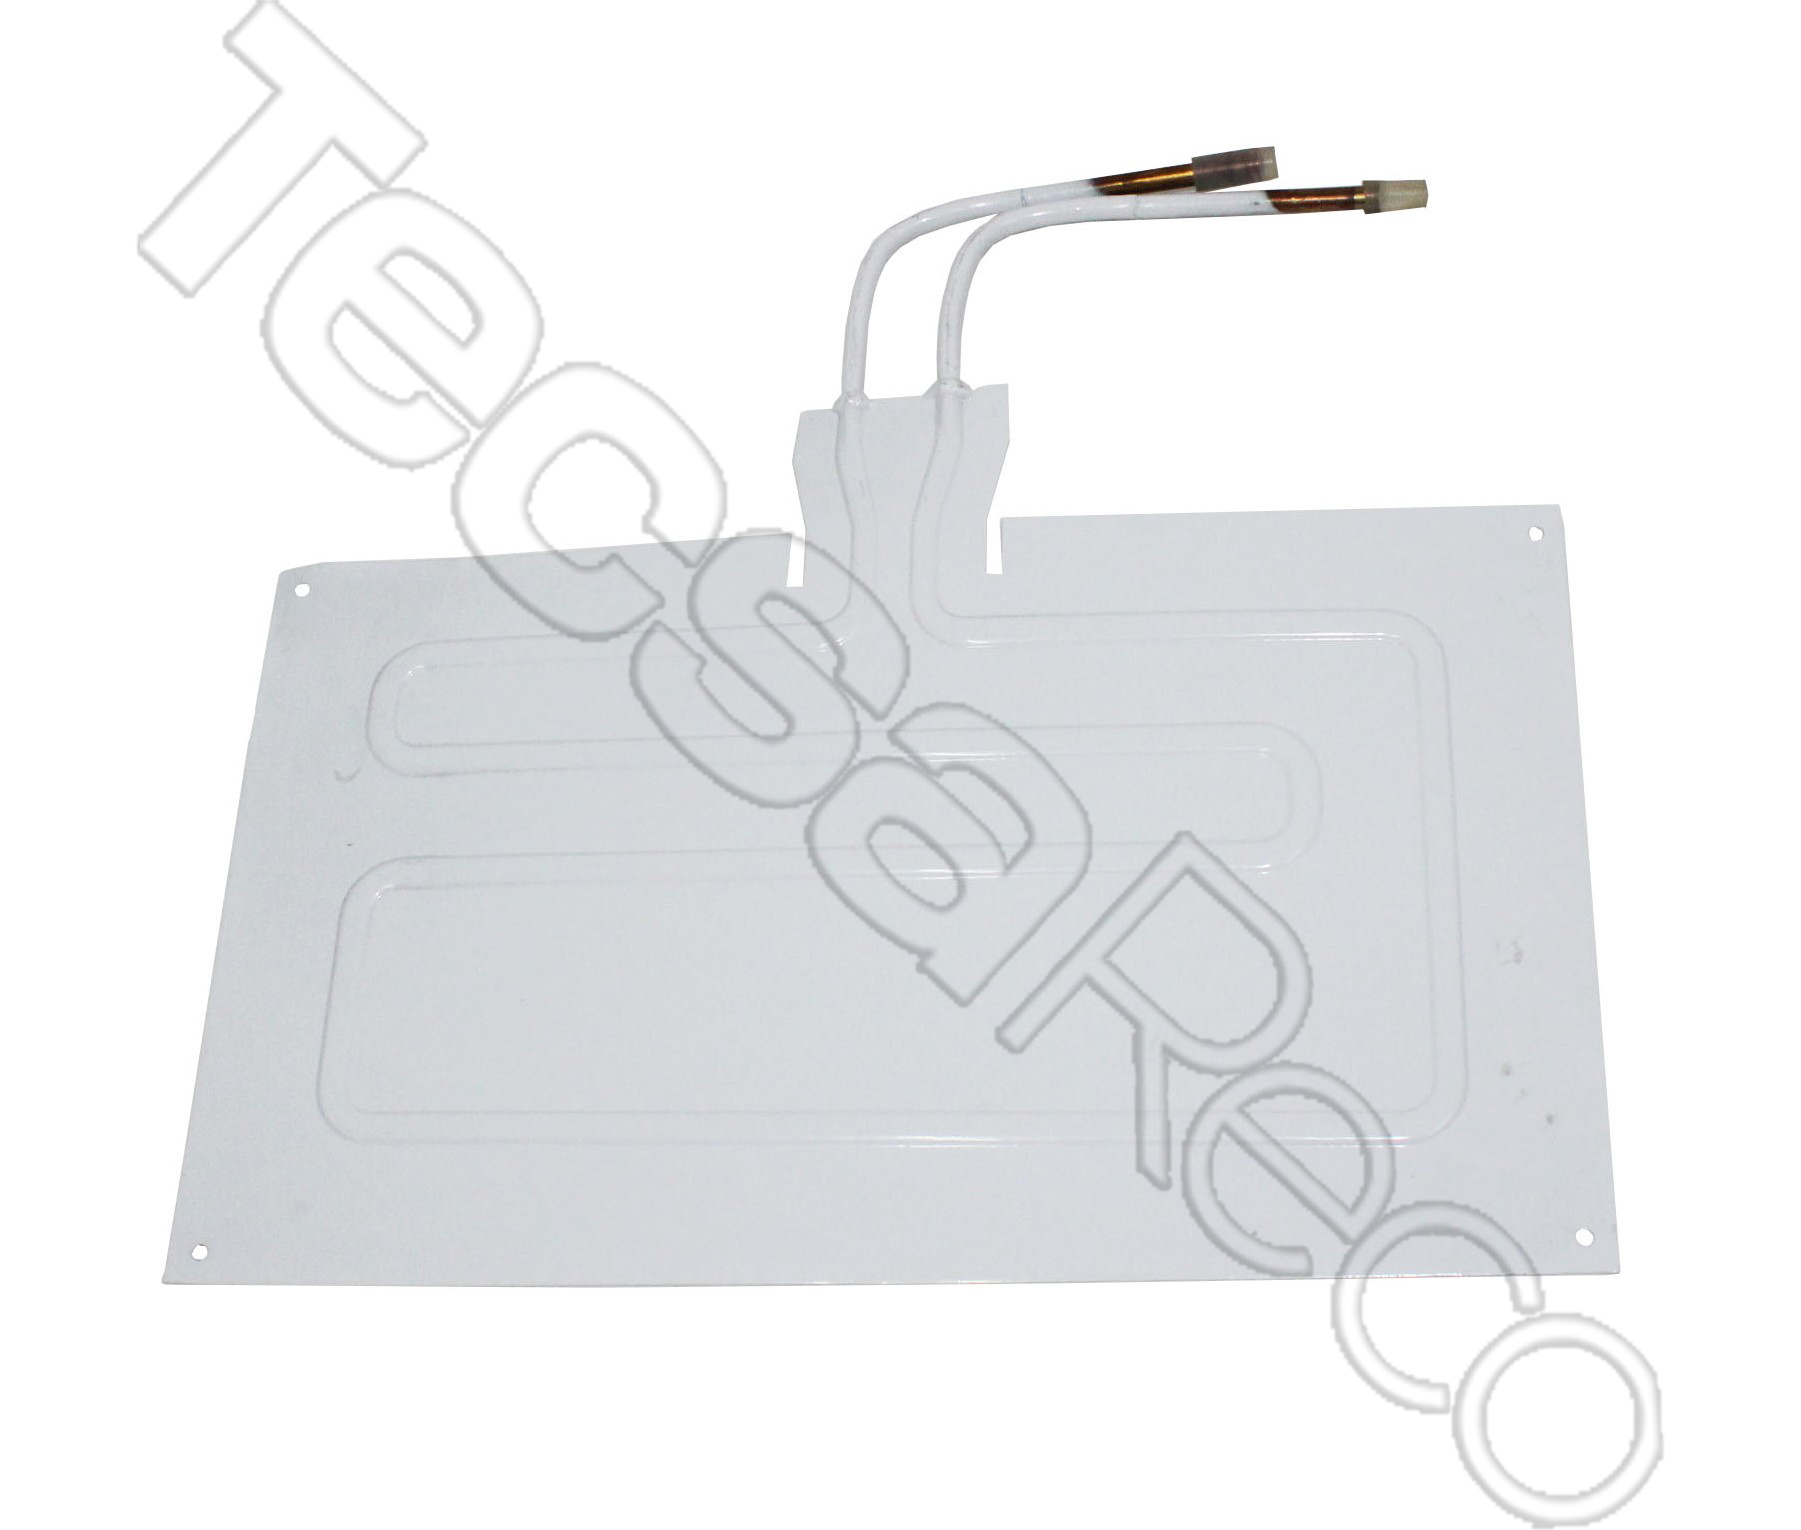 Evaporator Plate - 430 x 251mm Double Entry